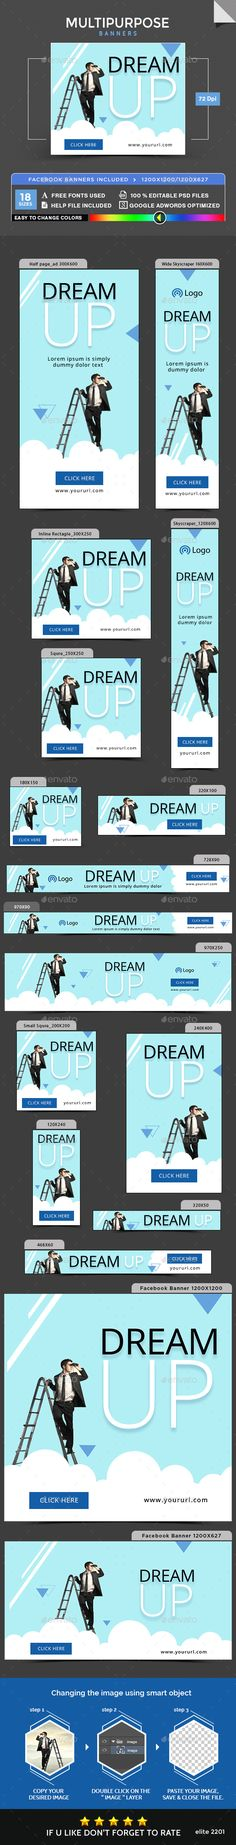 Multipurpose Banners - Banners & Ads Web Elements Download here : https://graphicriver.net/item/multipurpose-banners/19753907?s_rank=148&ref=Al-fatih